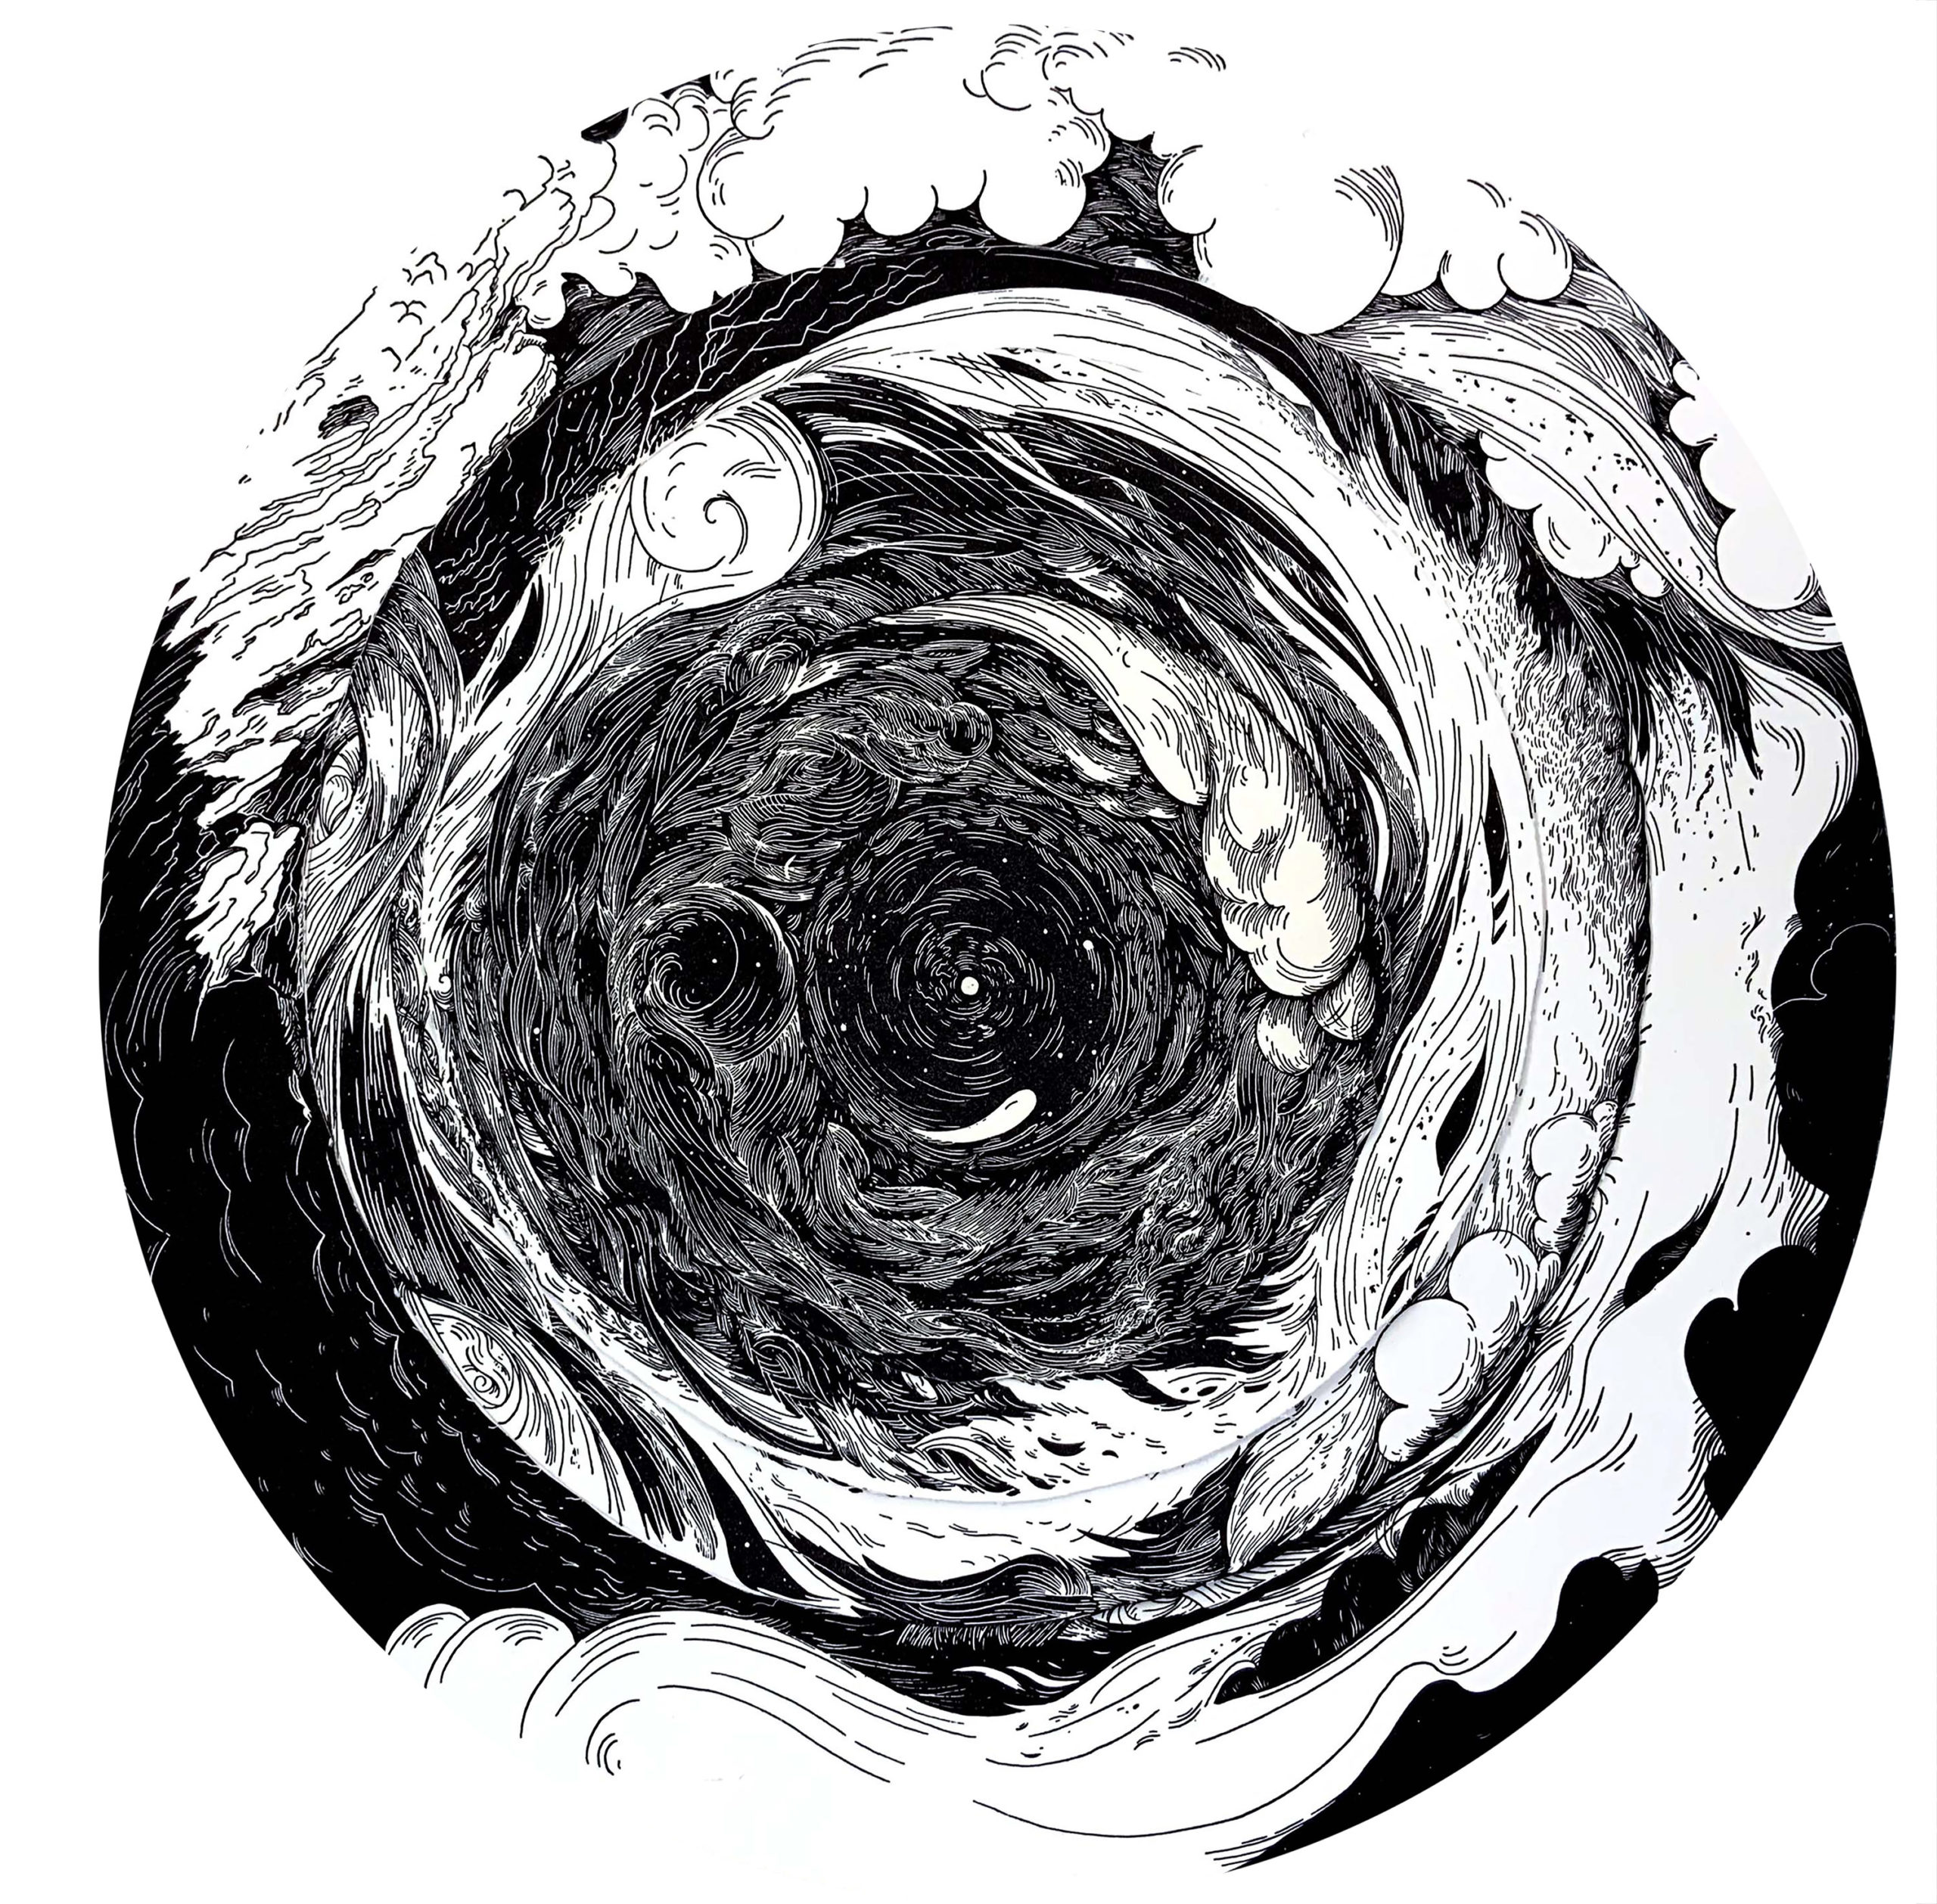 black and white circular illustration resembling a whirlpool